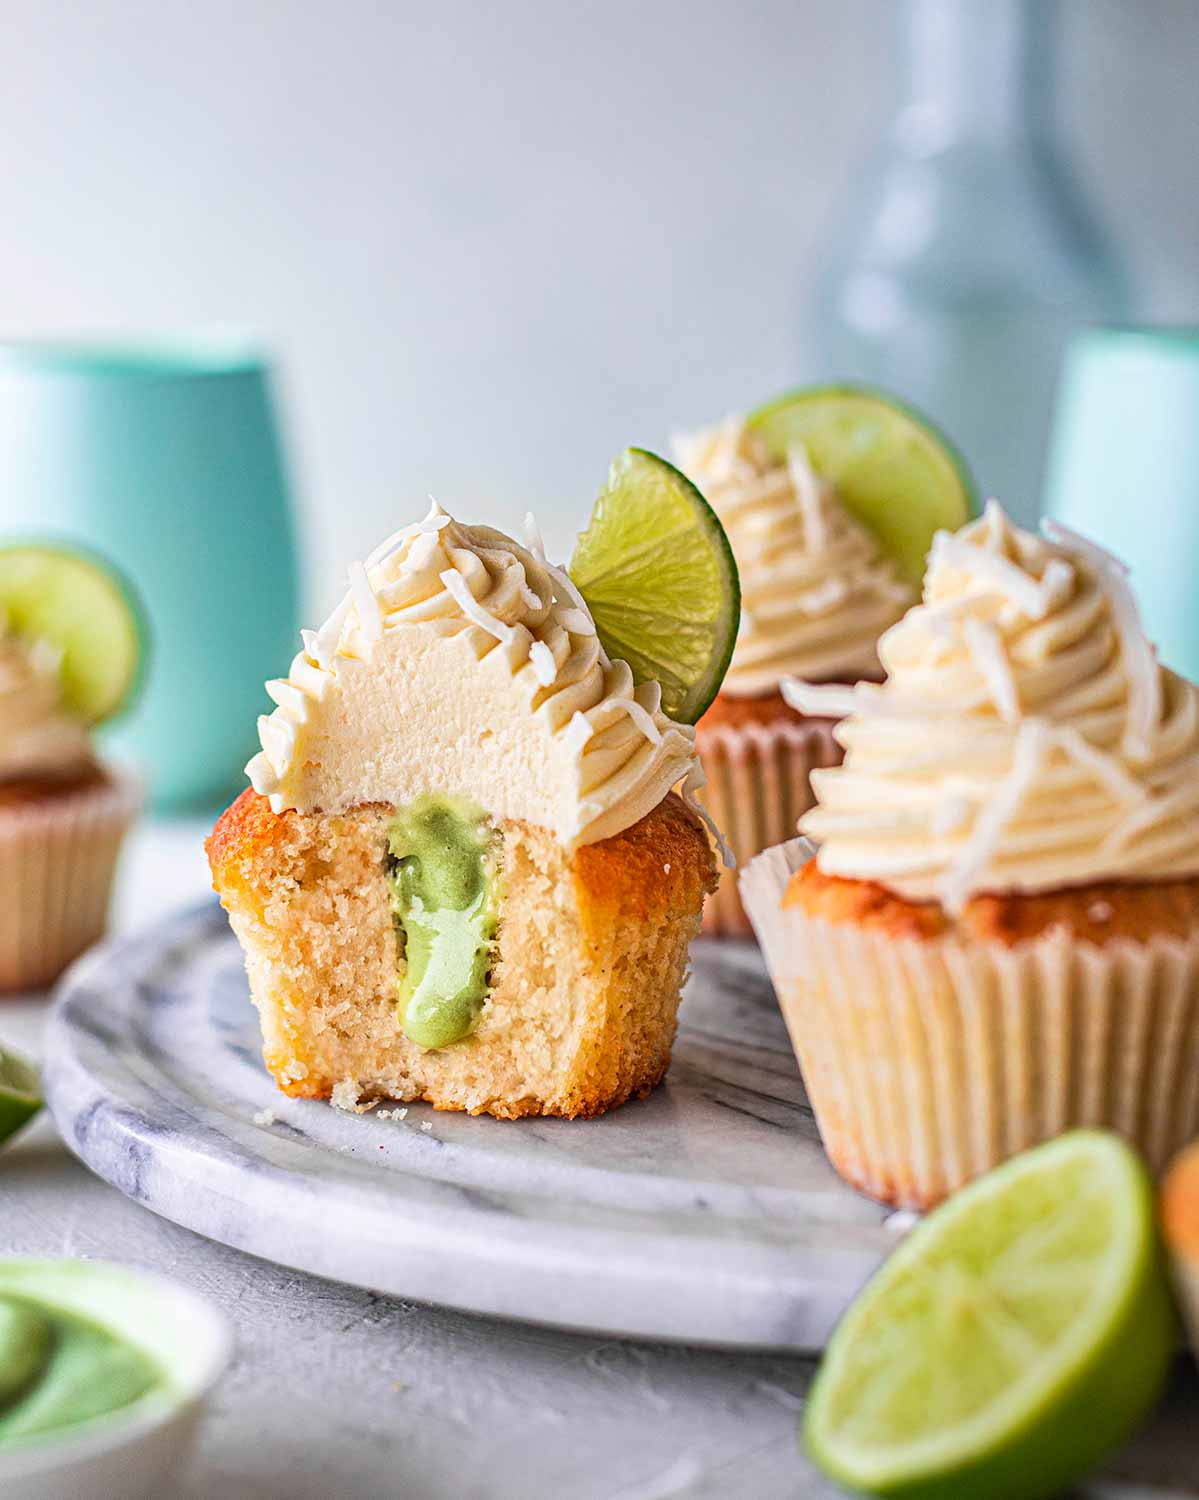 Vegan coconut lime cupcakes on marble board. One cupcake has a bite taken out of it showing the pastel green lime curd filling